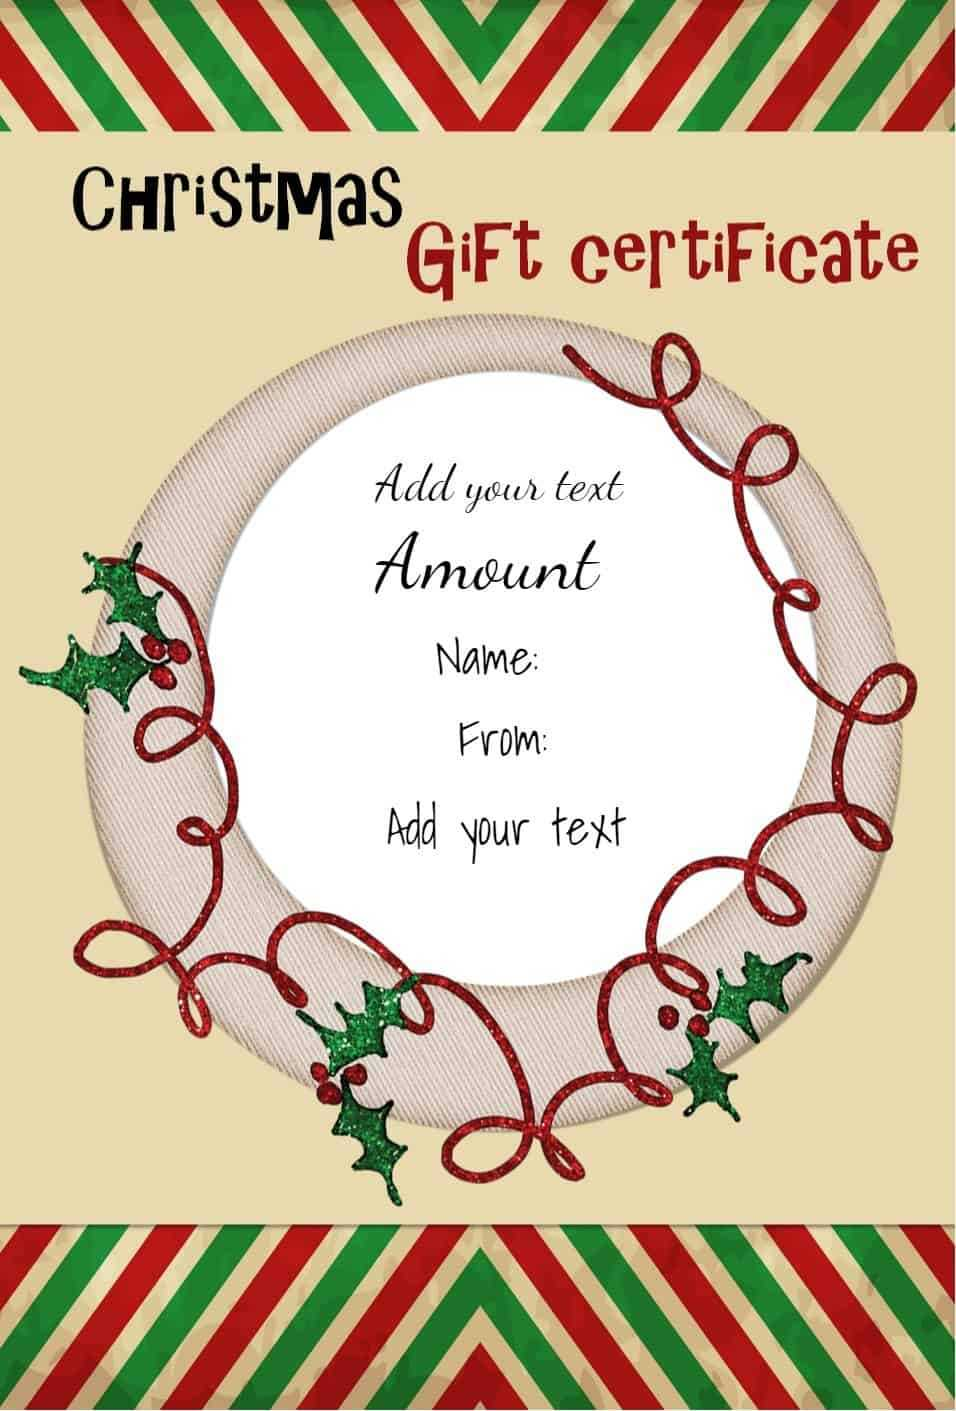 Free Christmas Gift Certificate Template   Customize Online Intended For Christmas Gift Certificate Template Free Download